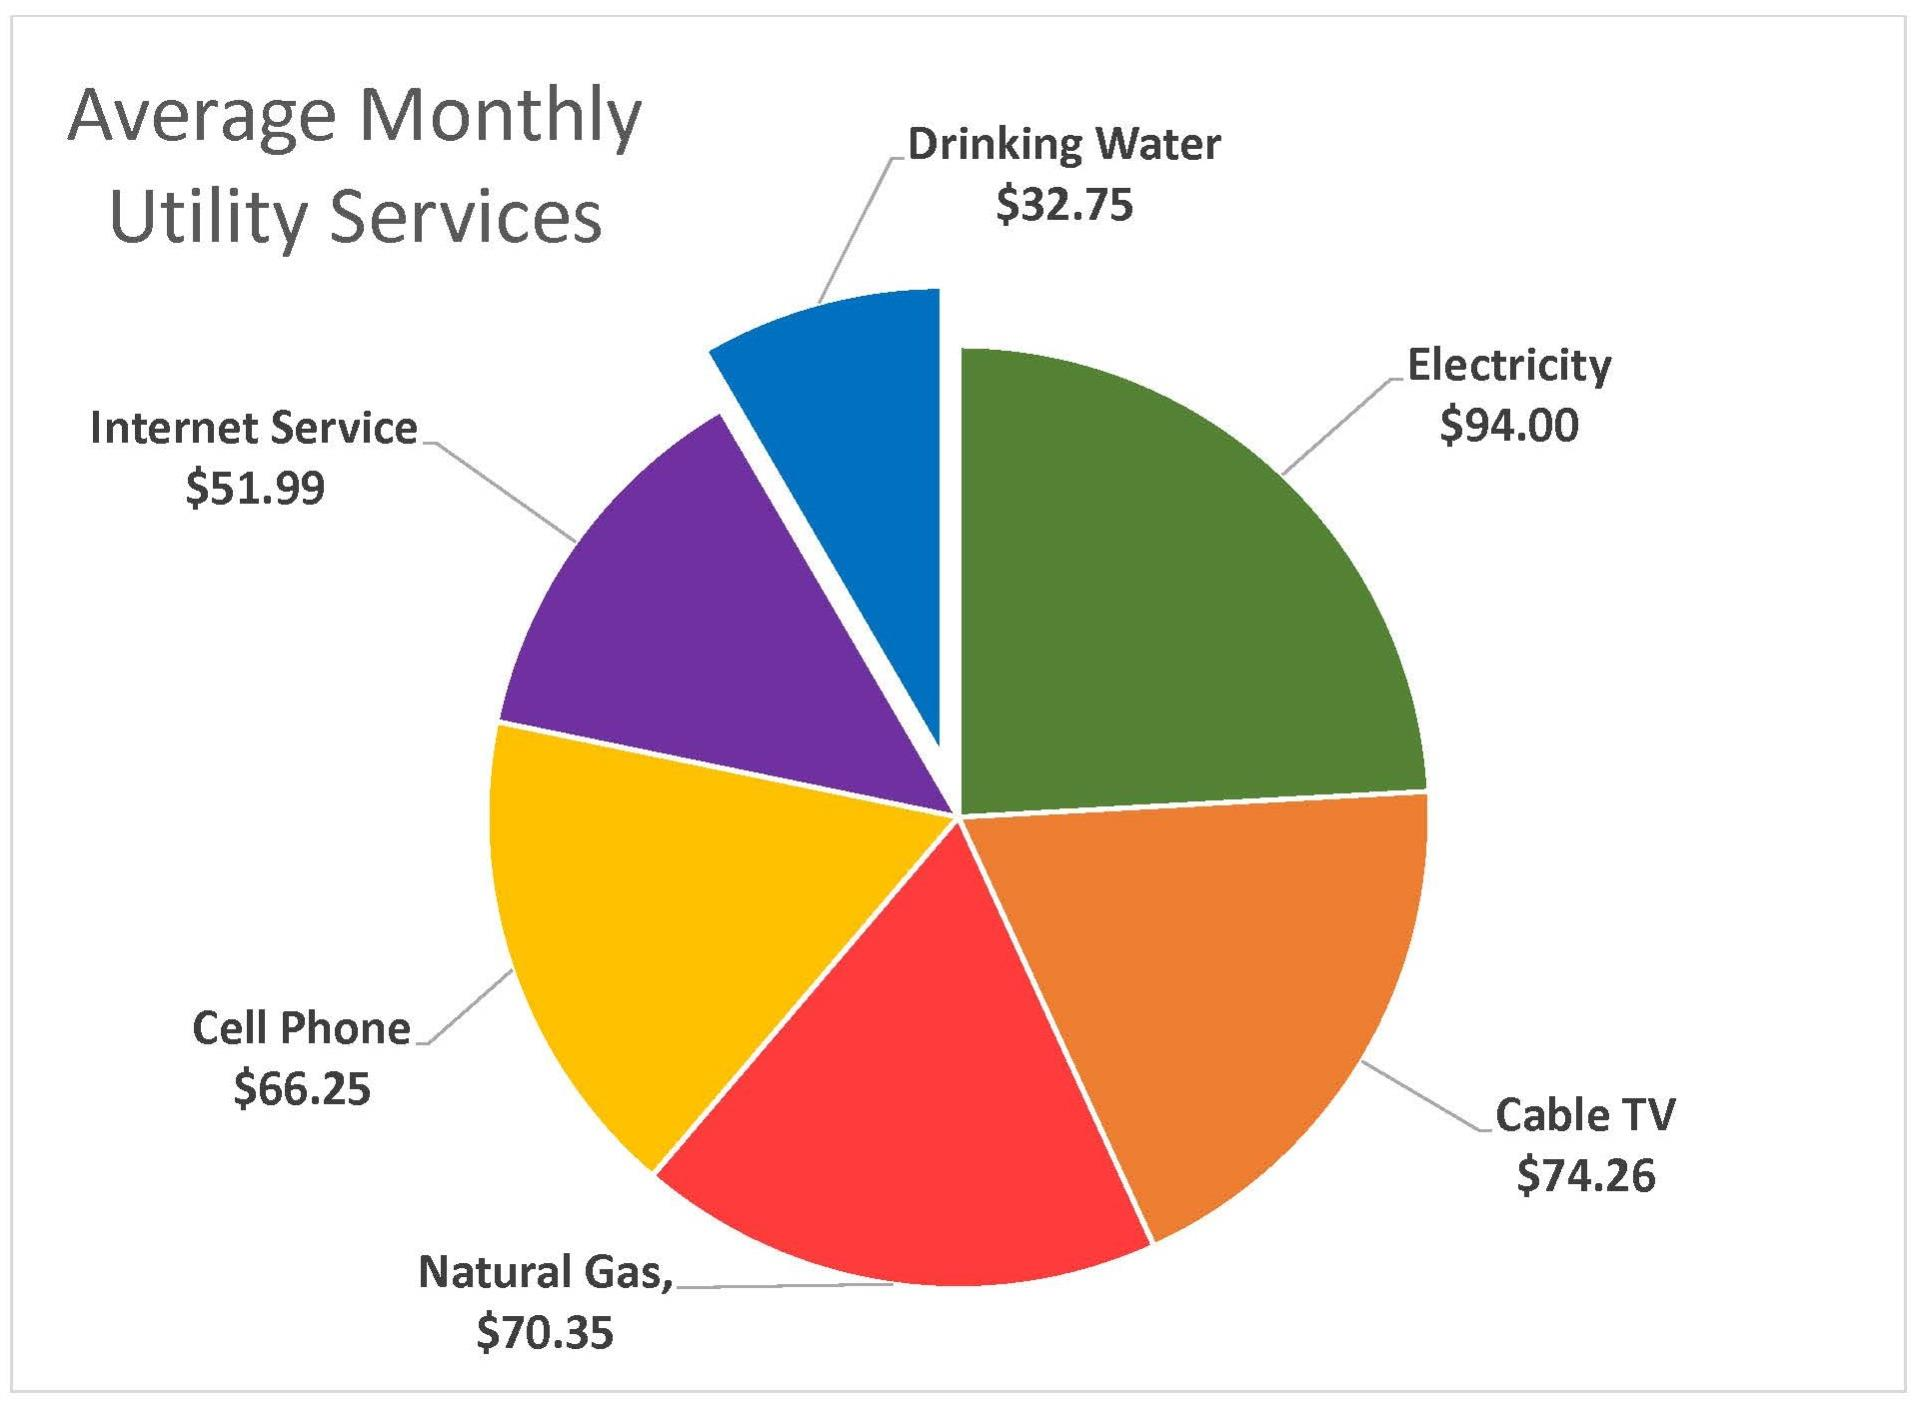 Average Monthly Utility Services Pie Chart